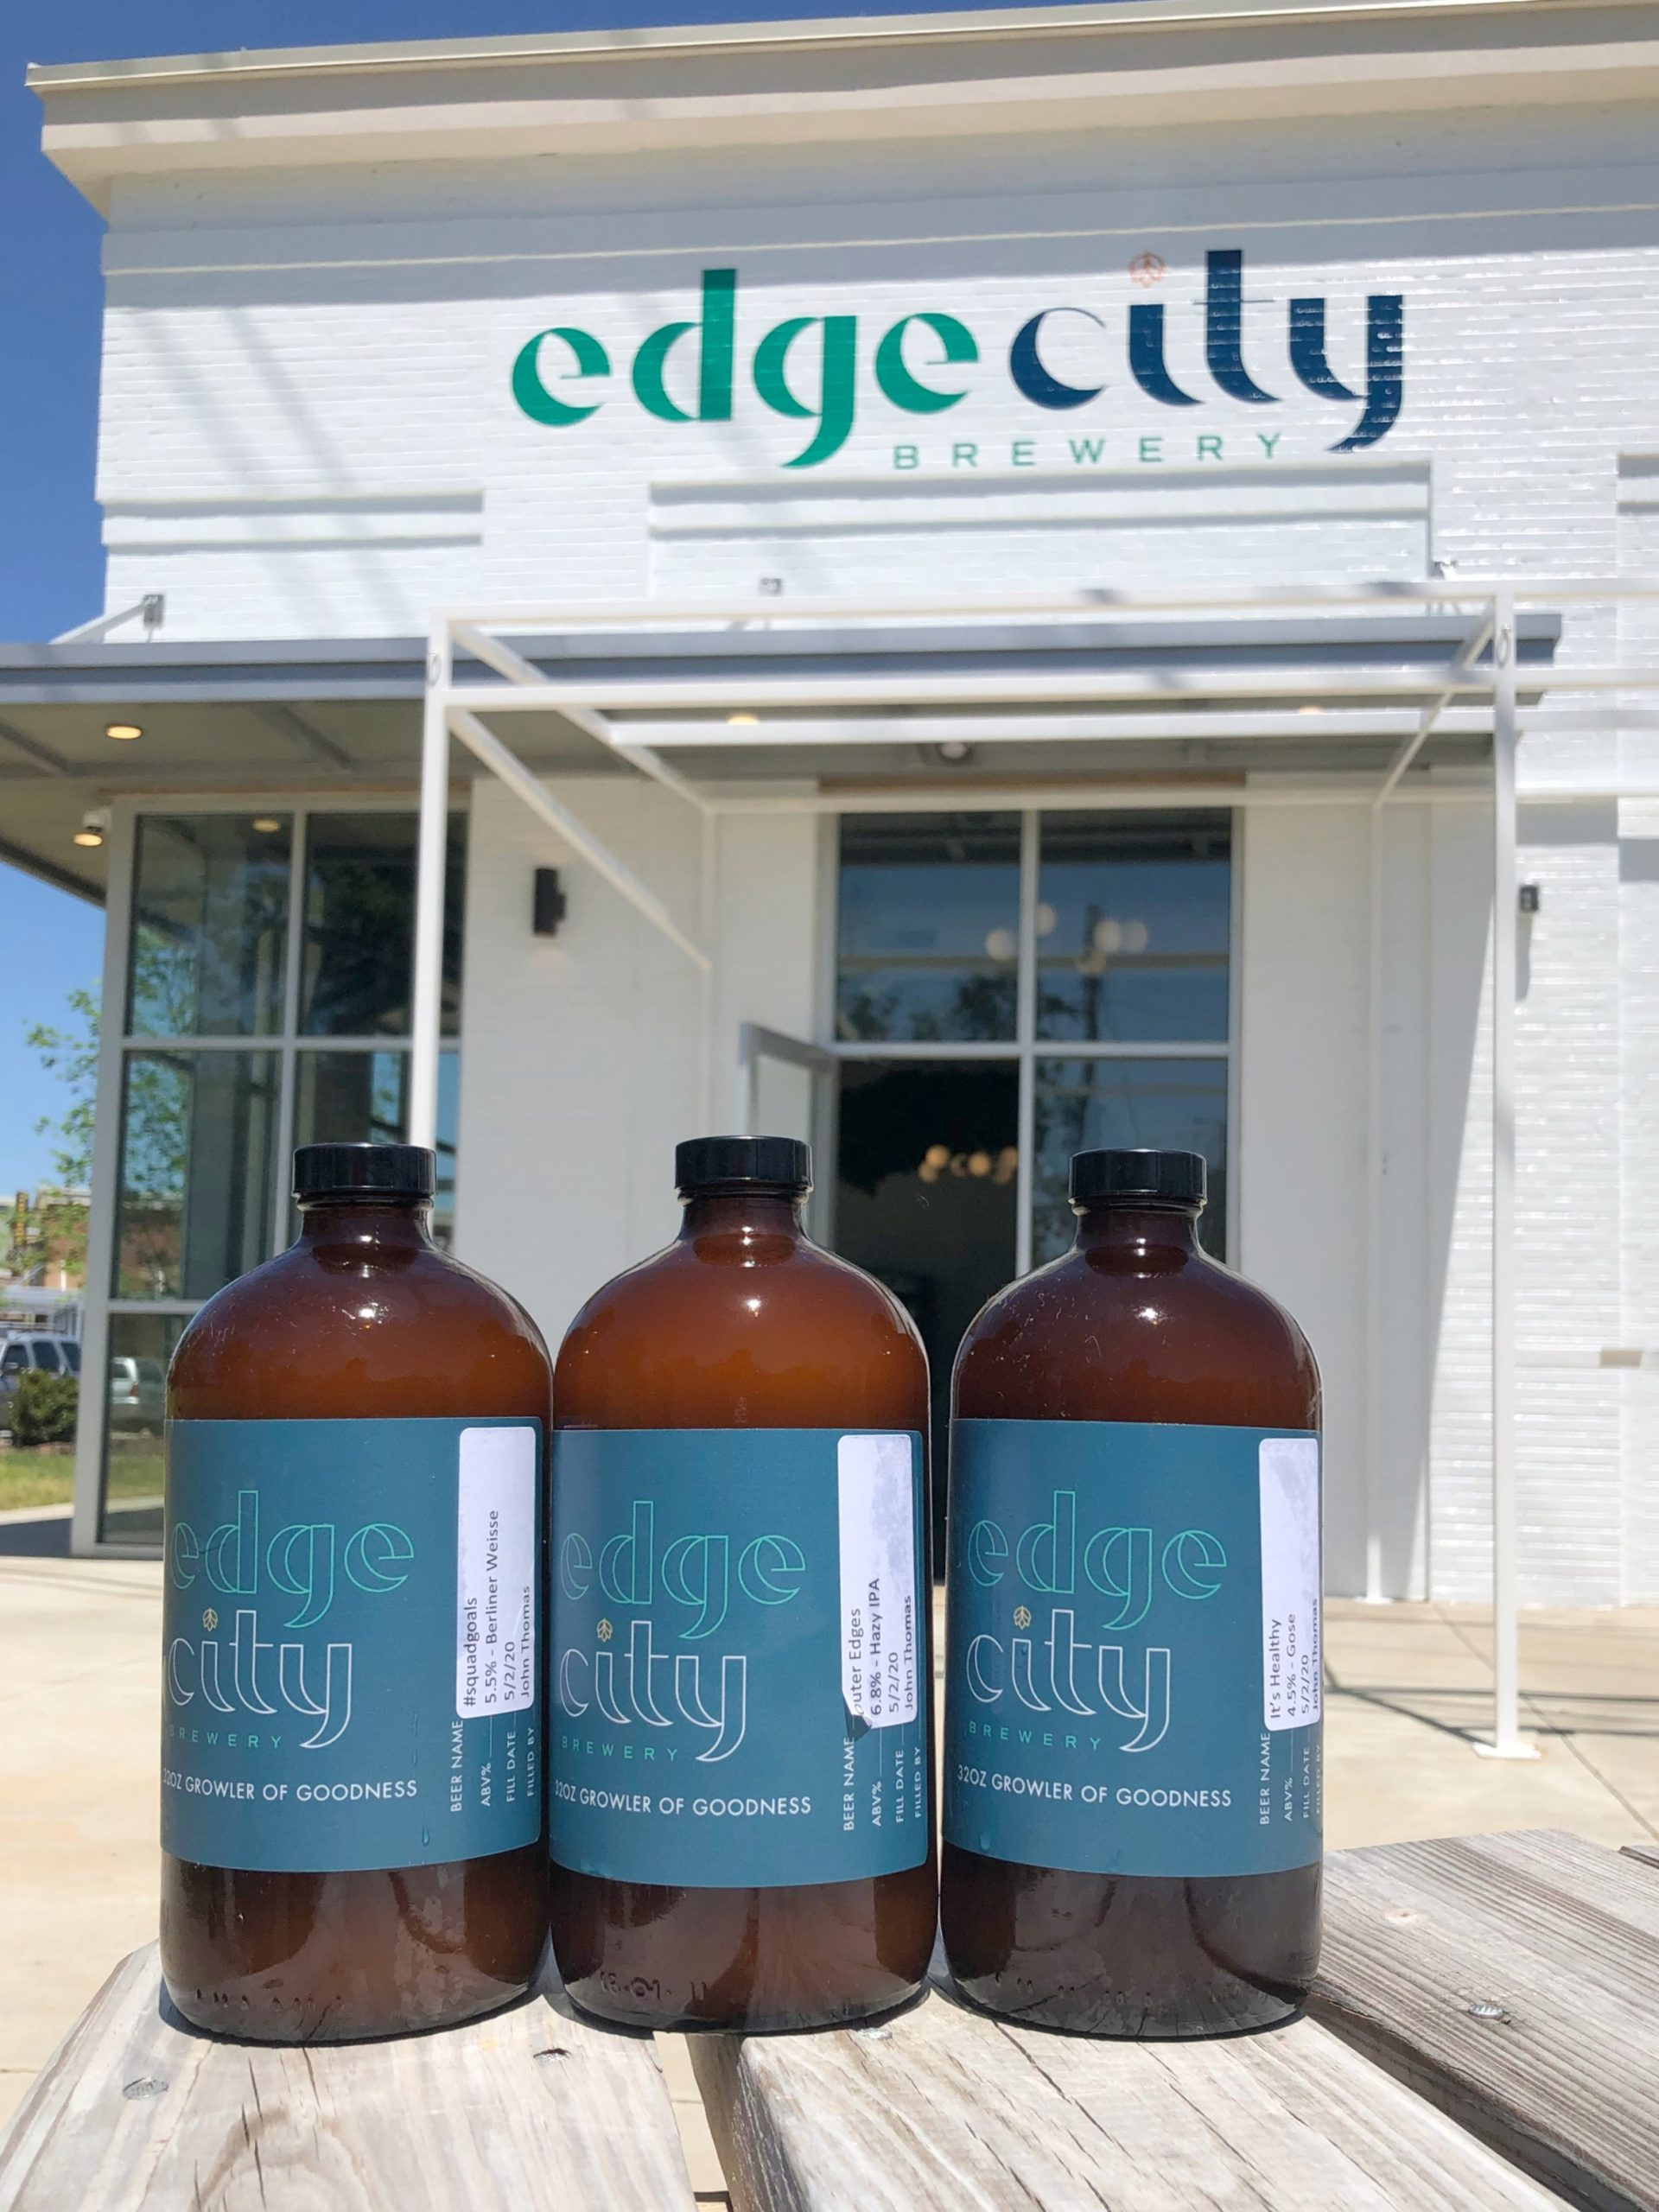 Edge City Brewing